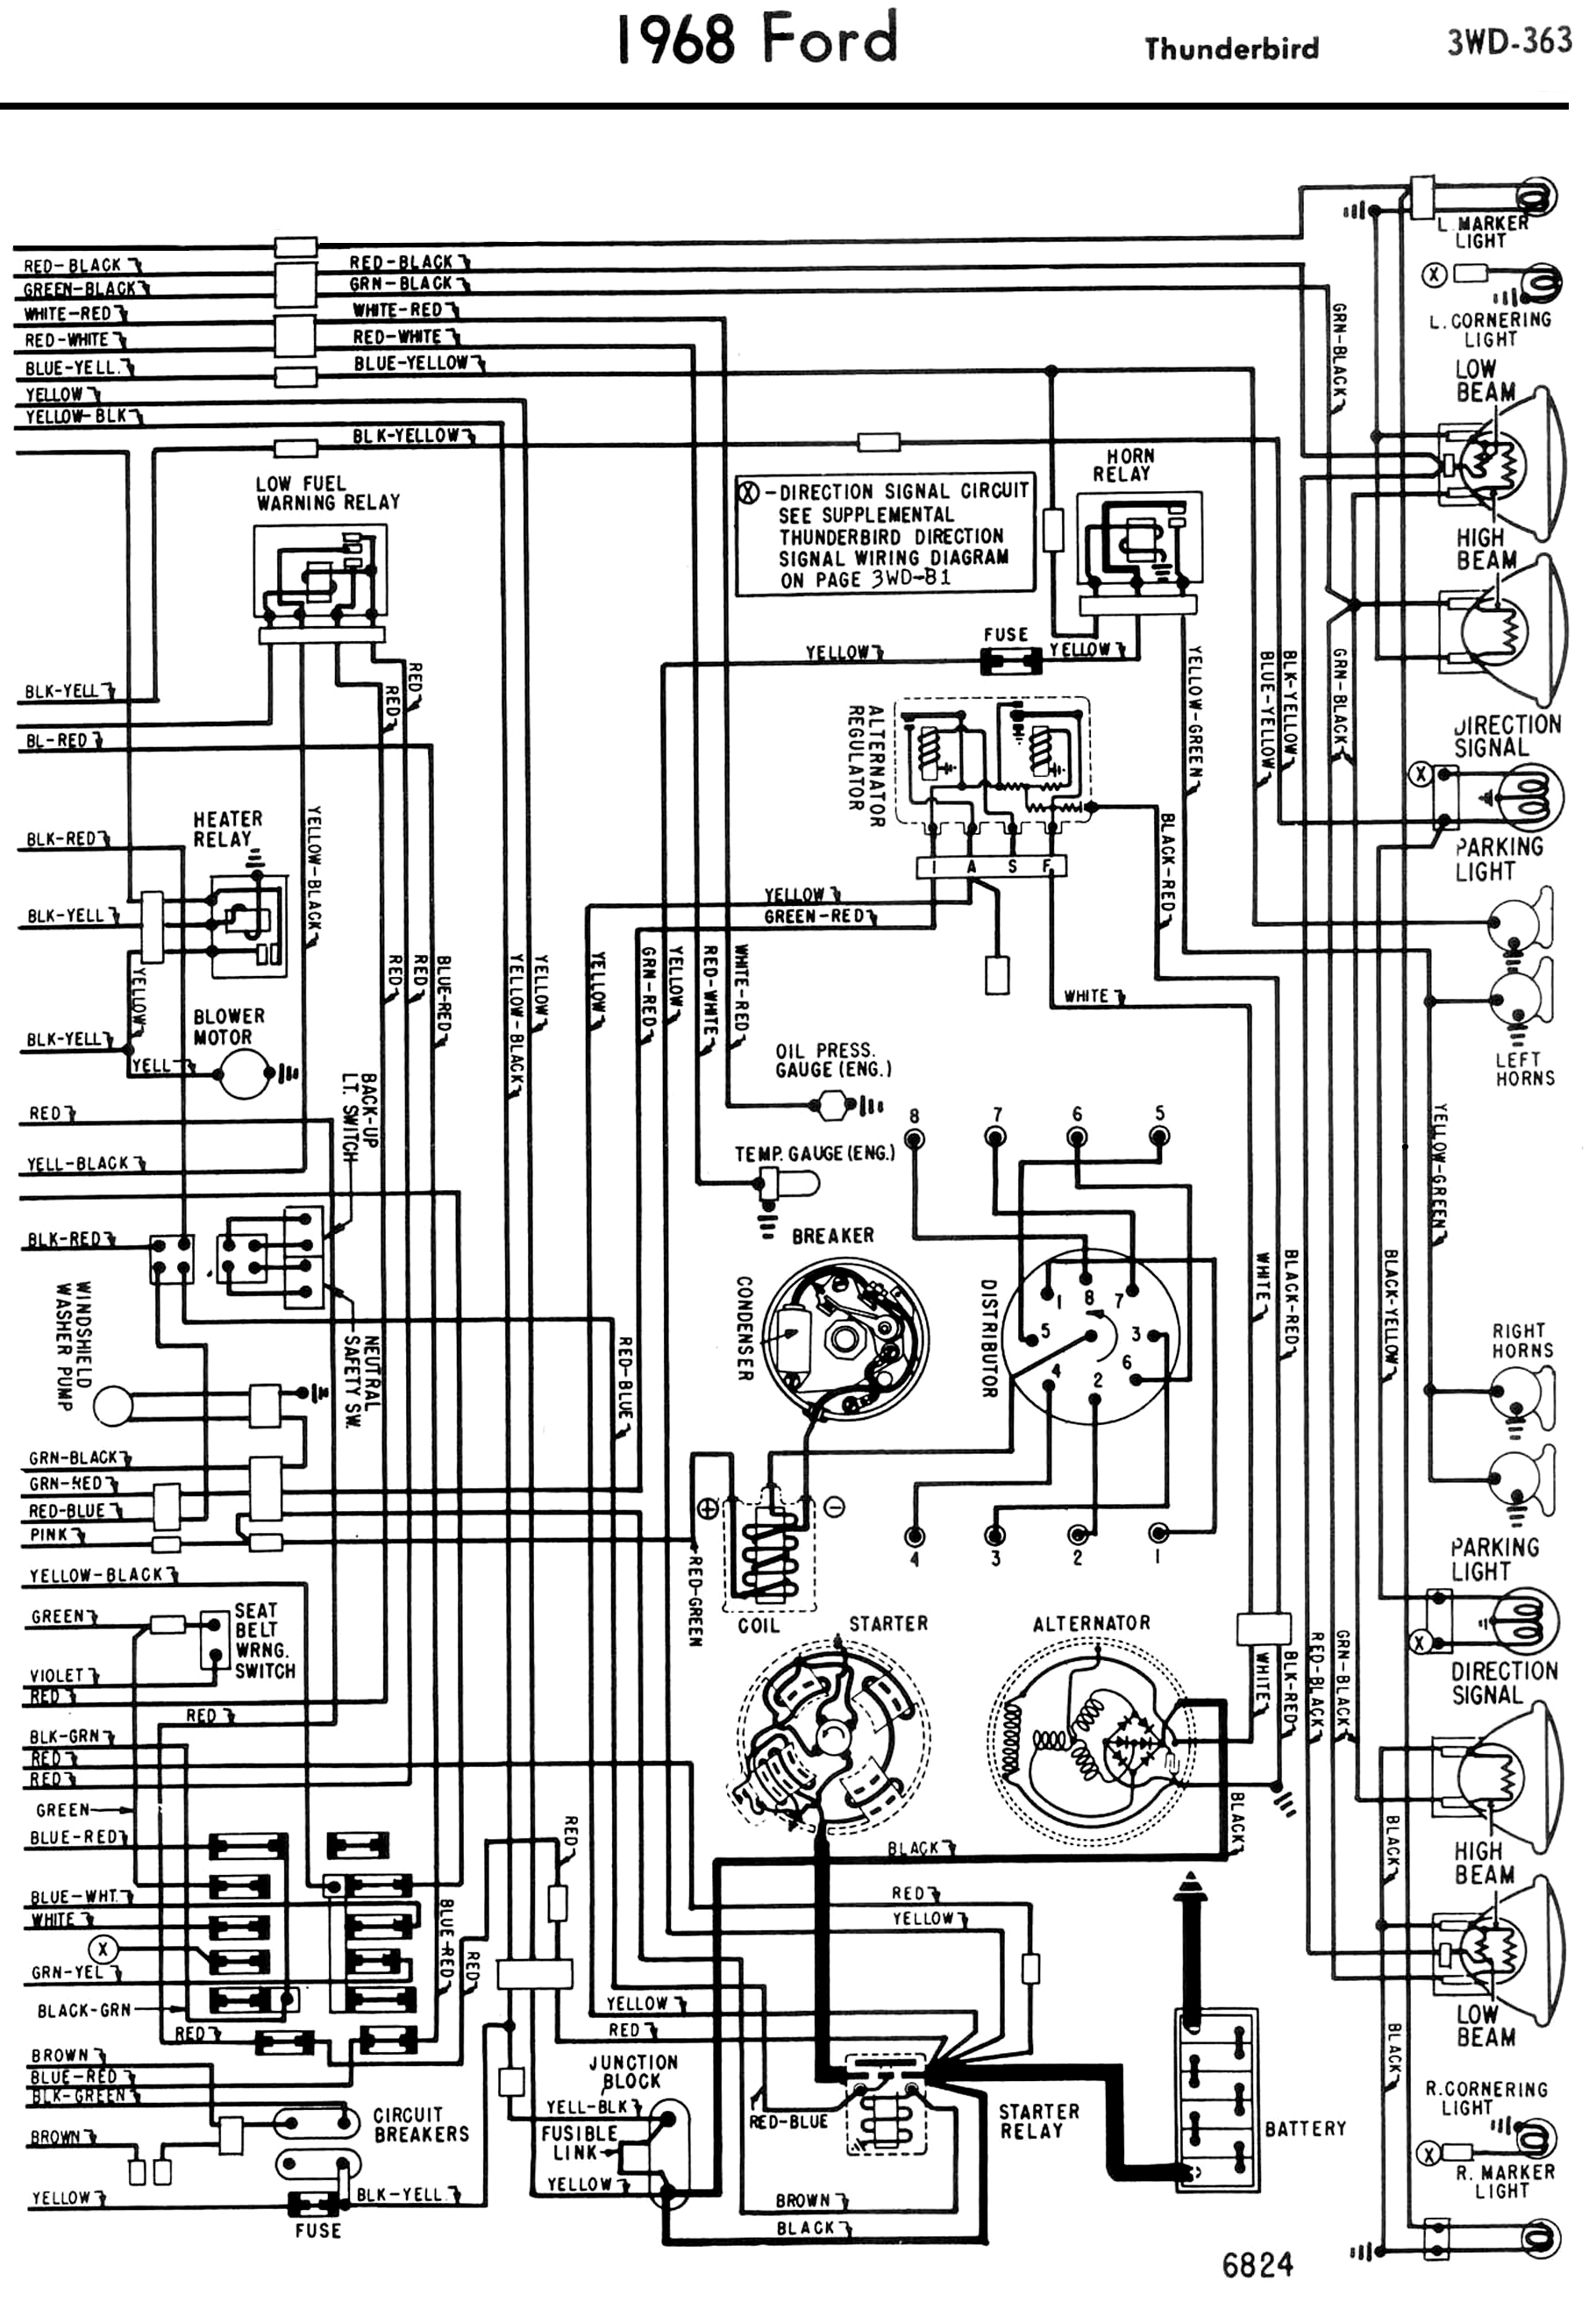 68 ford wiring diagram learn circuit diagram u2022 rh gadgetowl co 1968 ford fairlane wiring diagram 1968 ford bronco wiring diagram